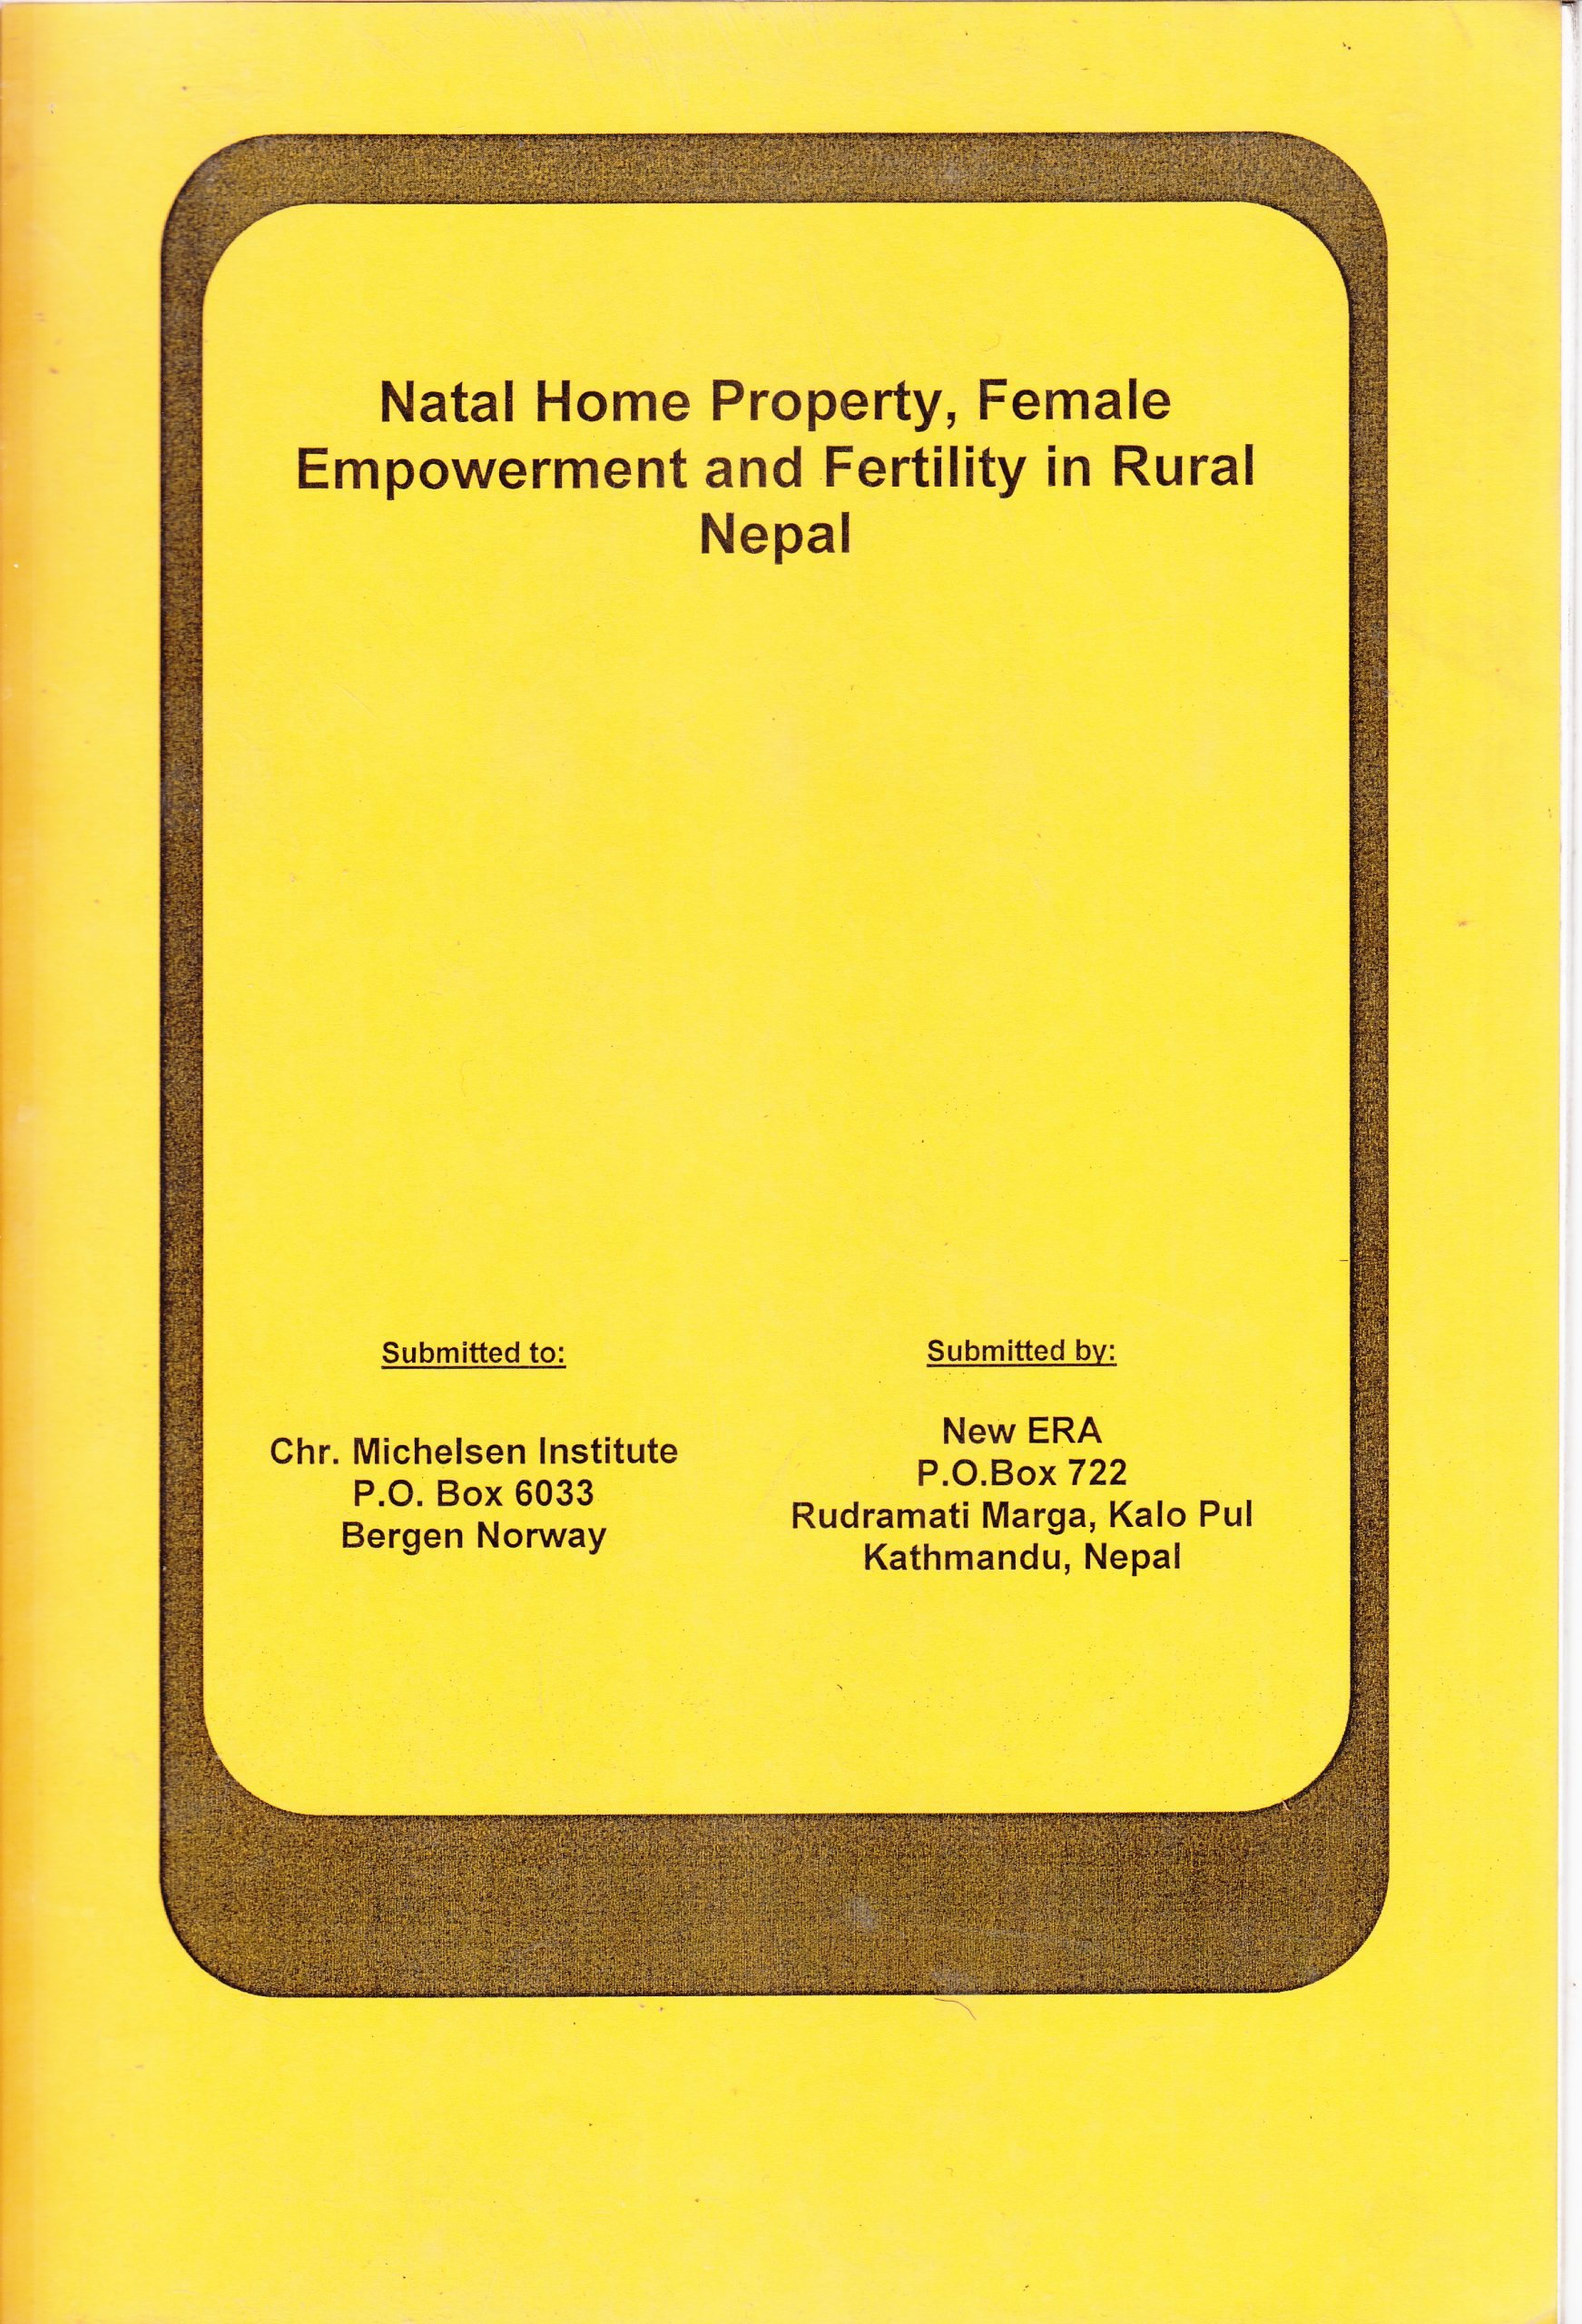 Natal Home Property, Female Empowerment and Fertility in Rural Nepal